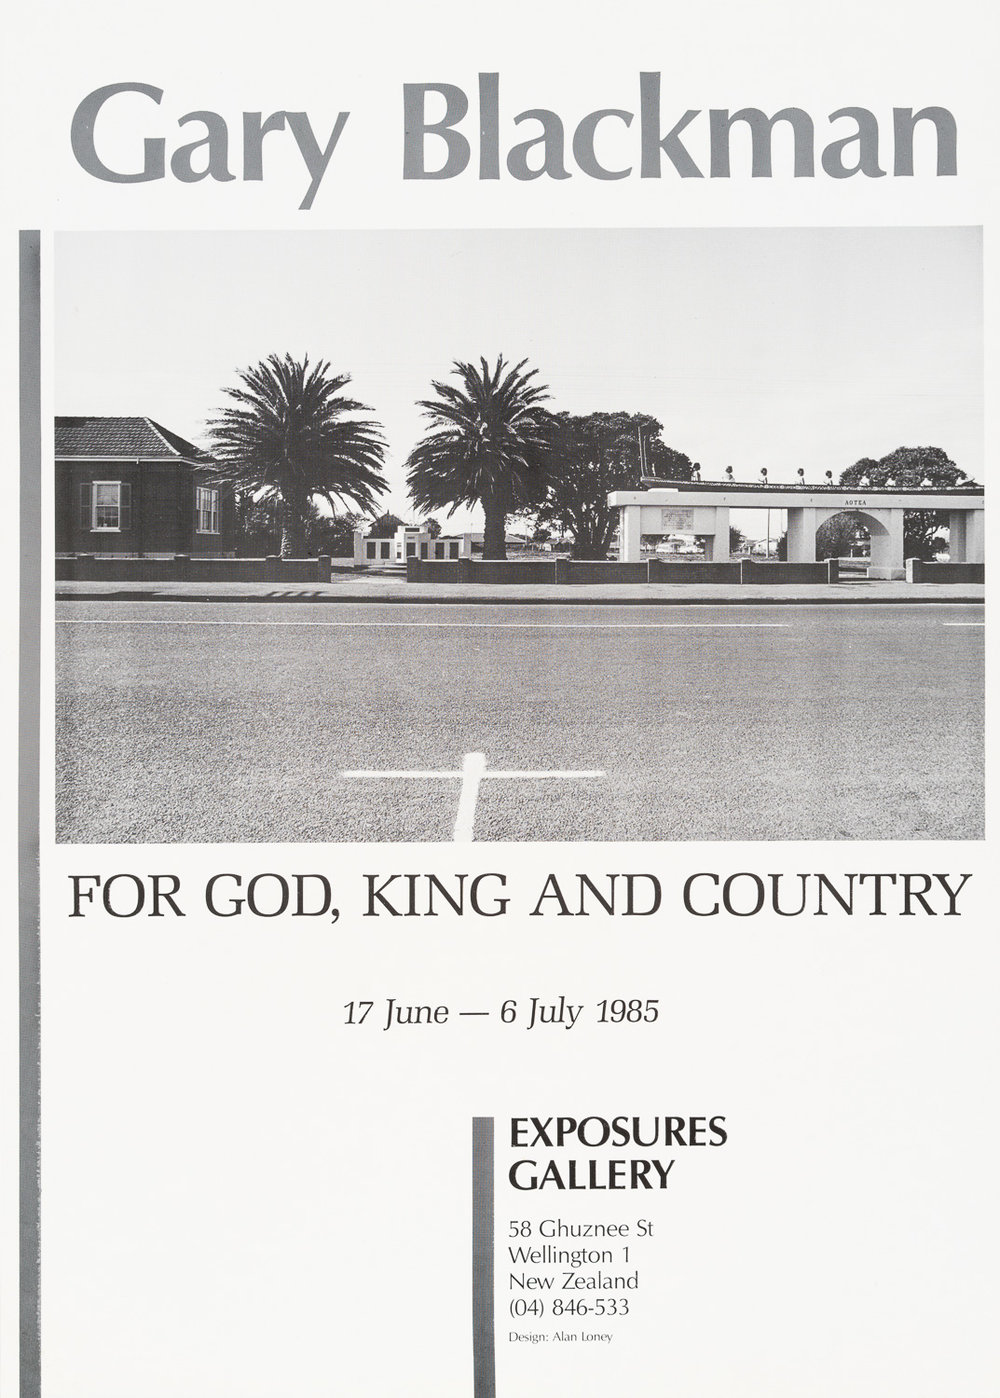 Gary BlackmanFor God, King and Country17 June – 6 July, 1985. Design by Alan Loney